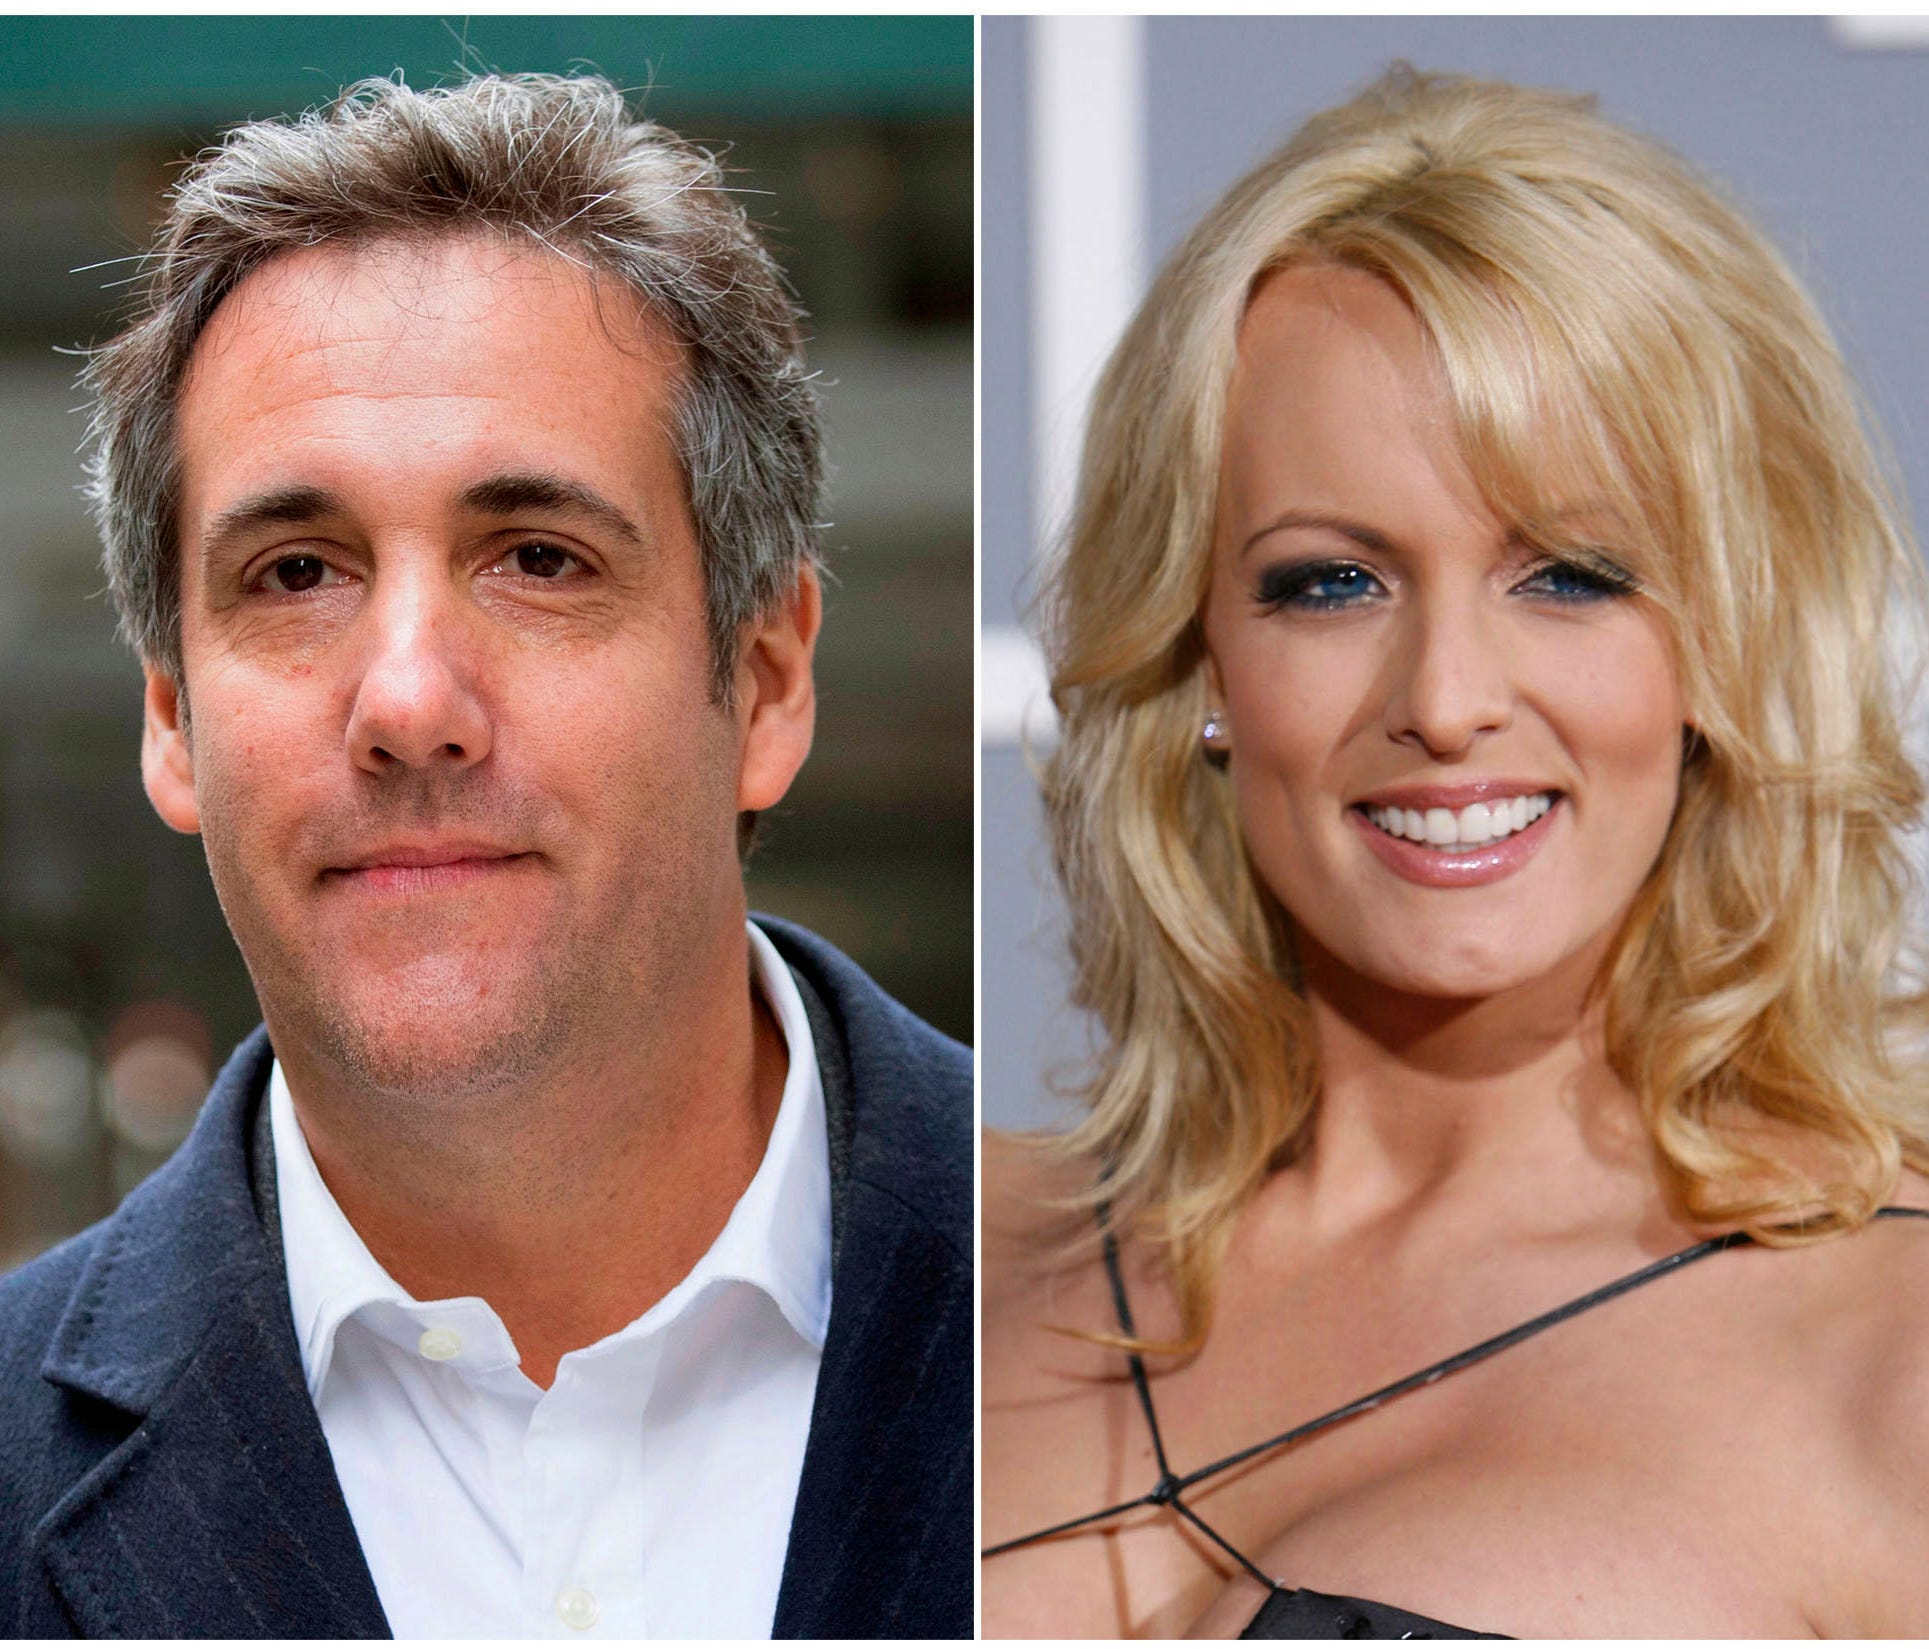 This combination photo shows, from left, President Trump, attorney Michael Cohen and adult film actress Stormy Daniels.